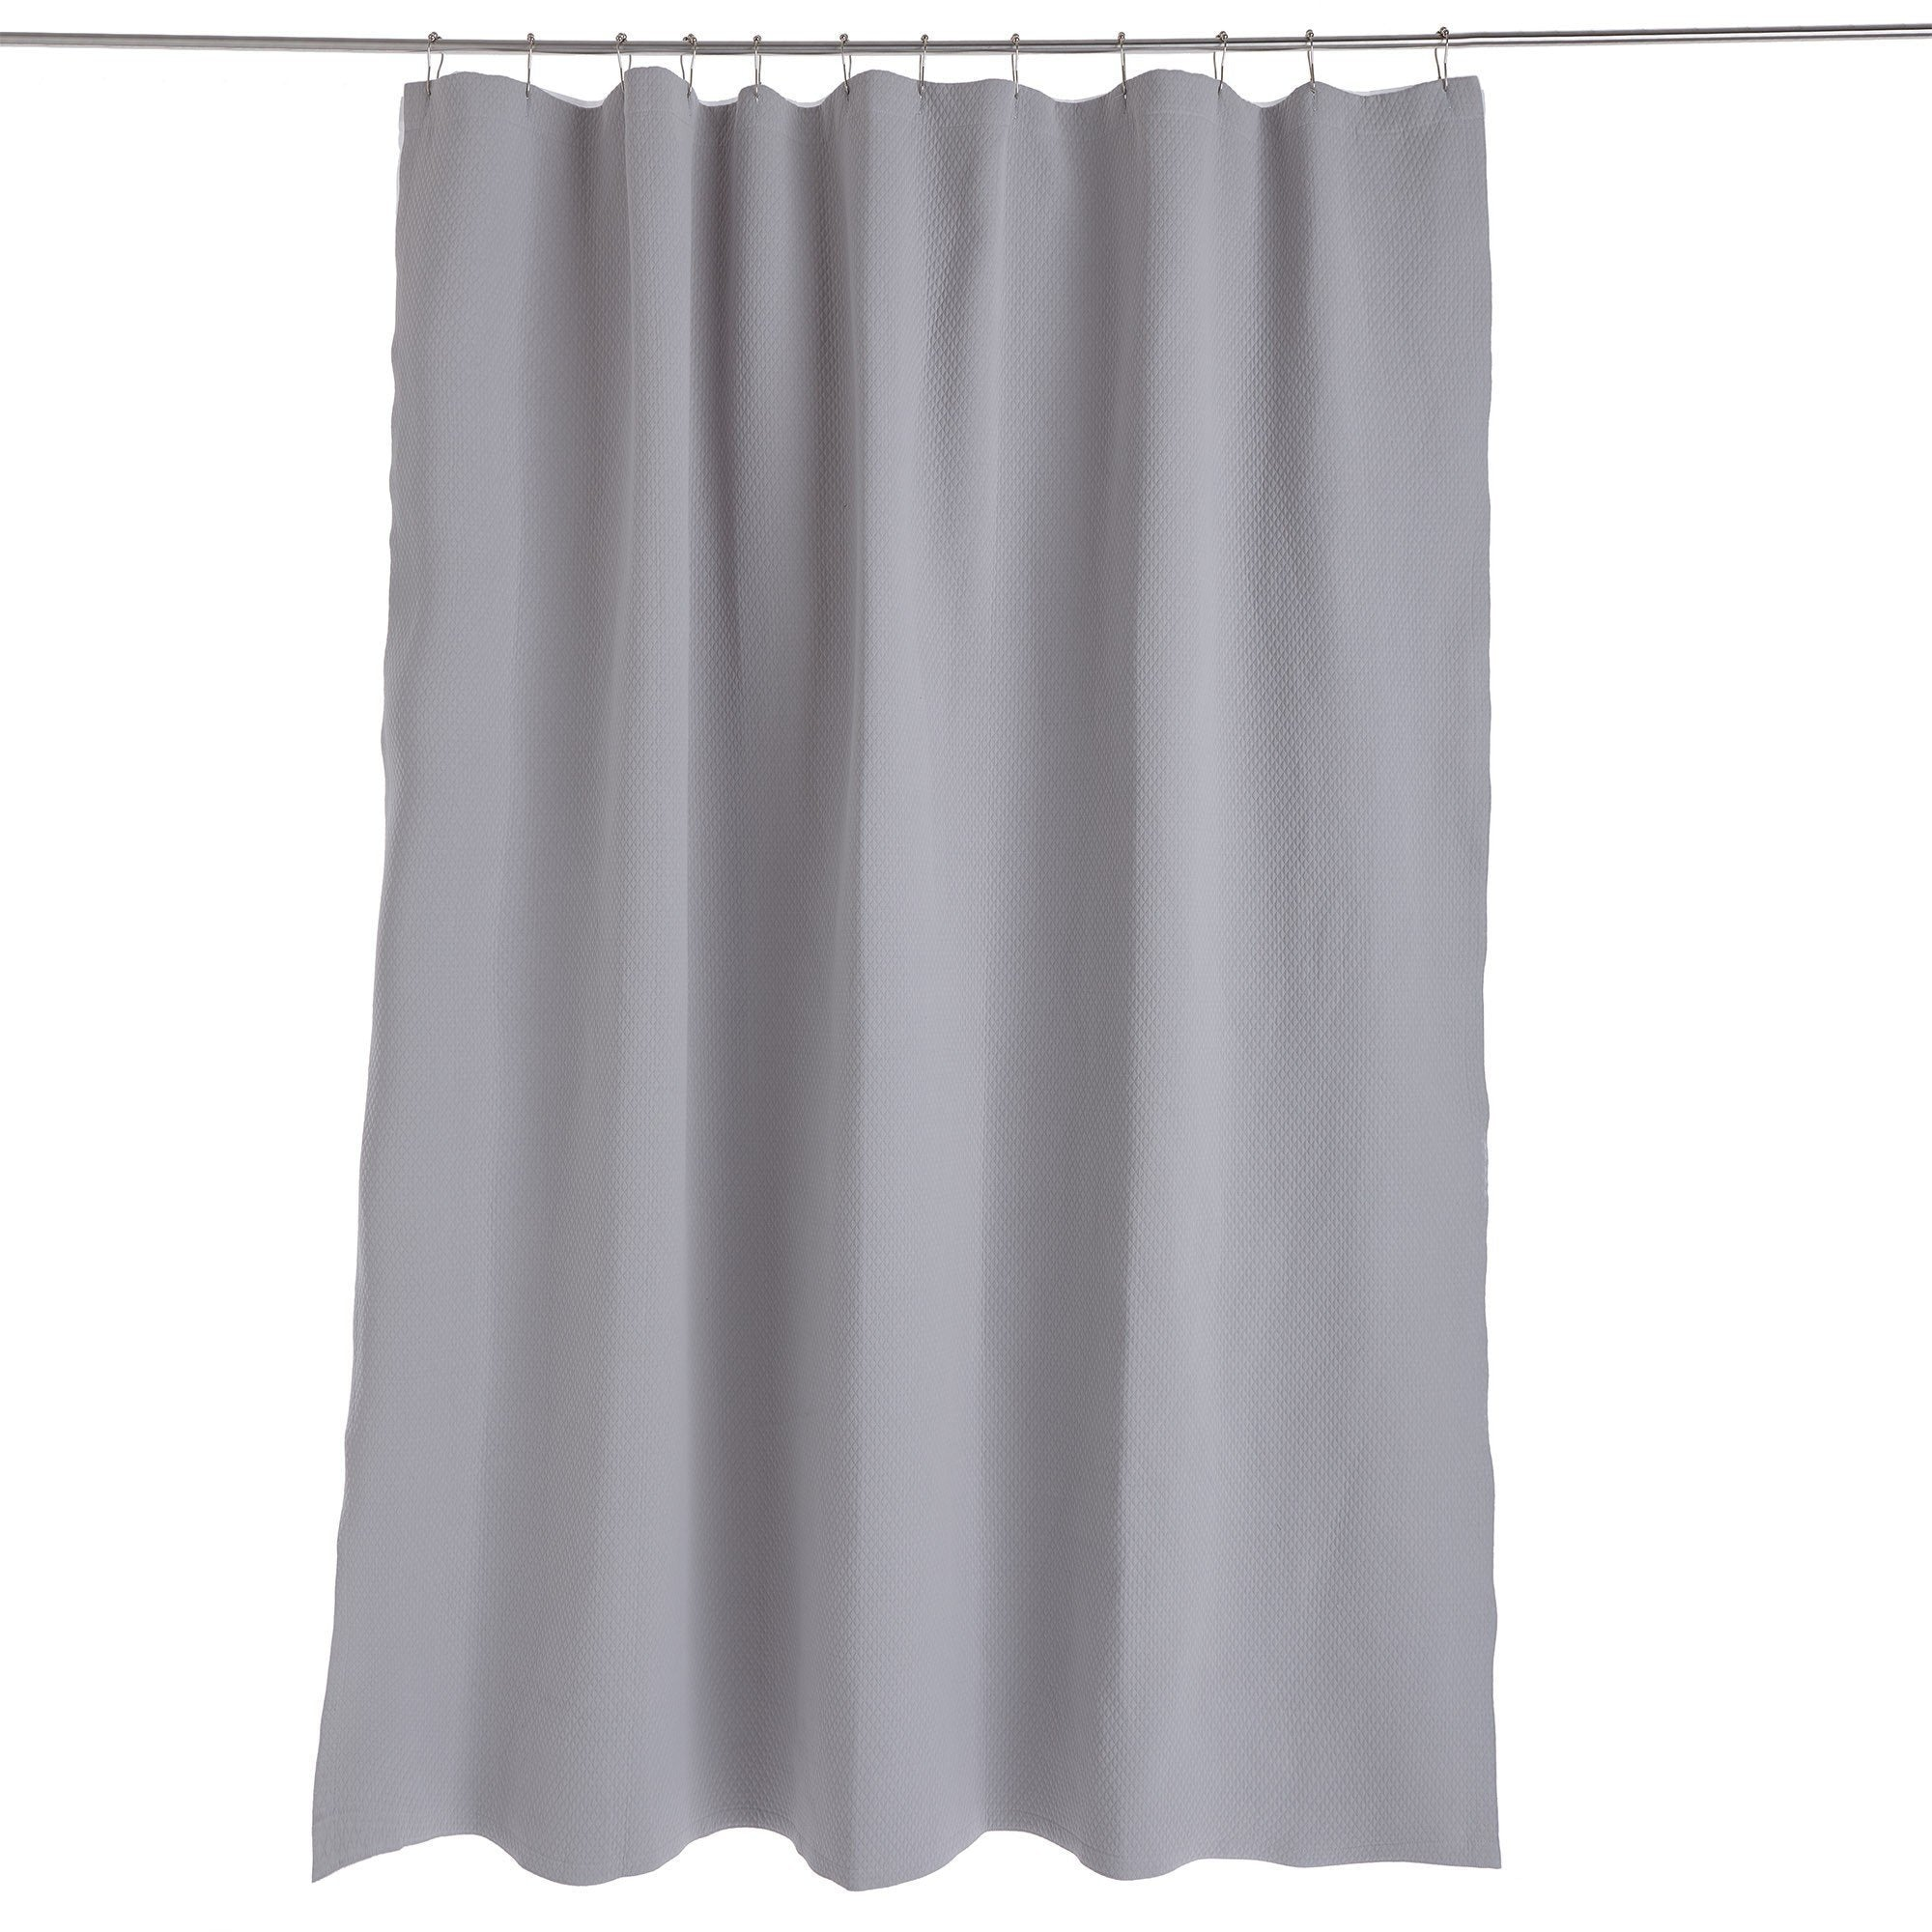 Proaza shower curtain, light grey, 100% cotton